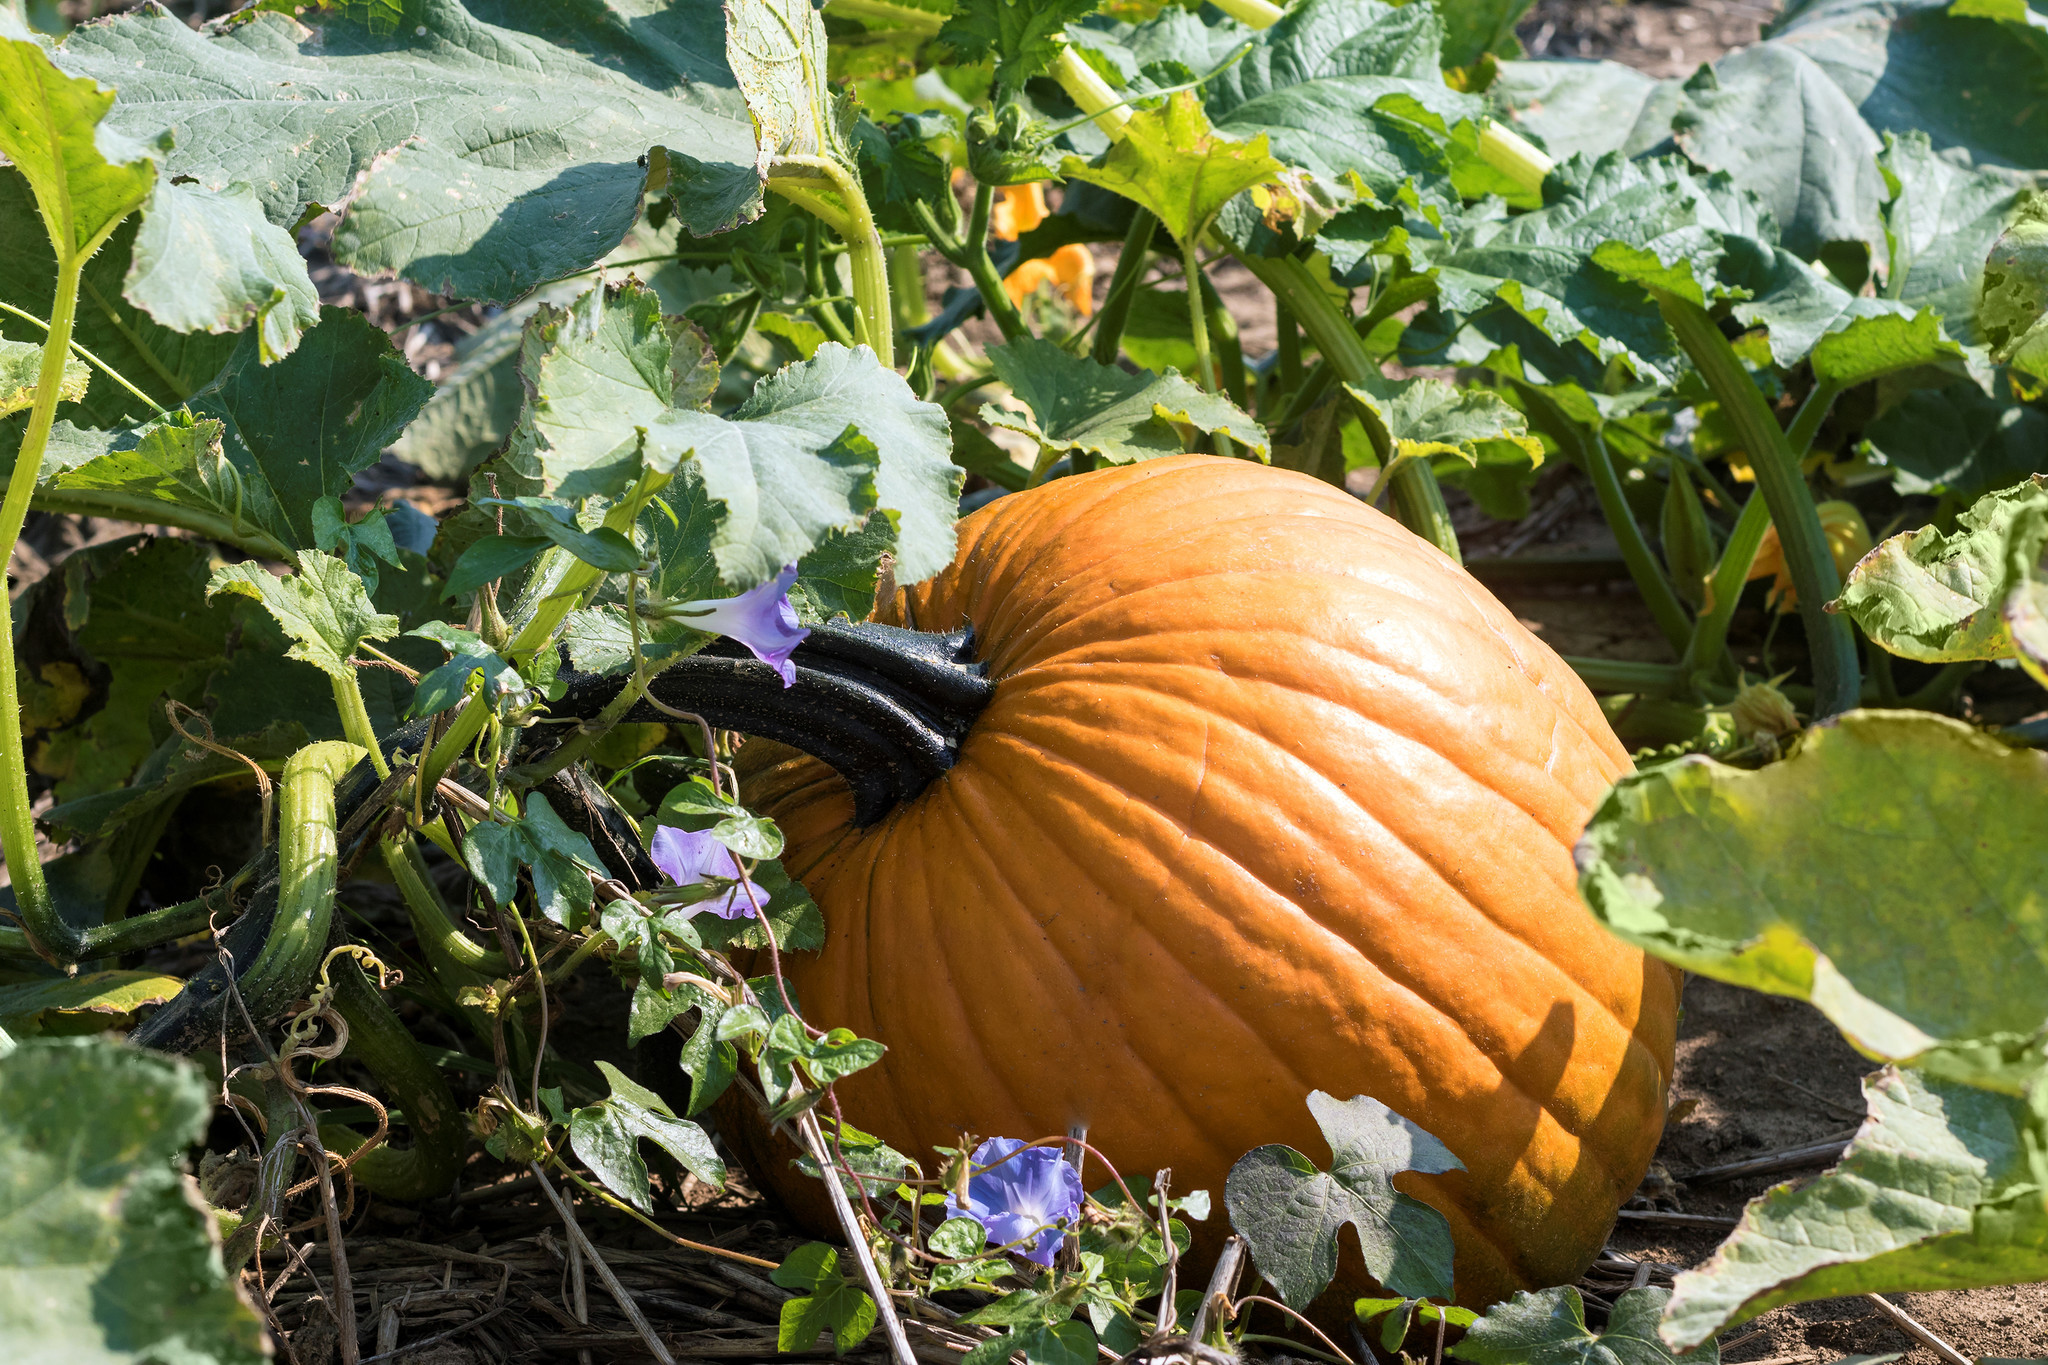 Pumpkin in the field. ** OUTS - ELSENT, FPG, CM - OUTS * NM, PH, VA if sourced by CT, LA or MoD **